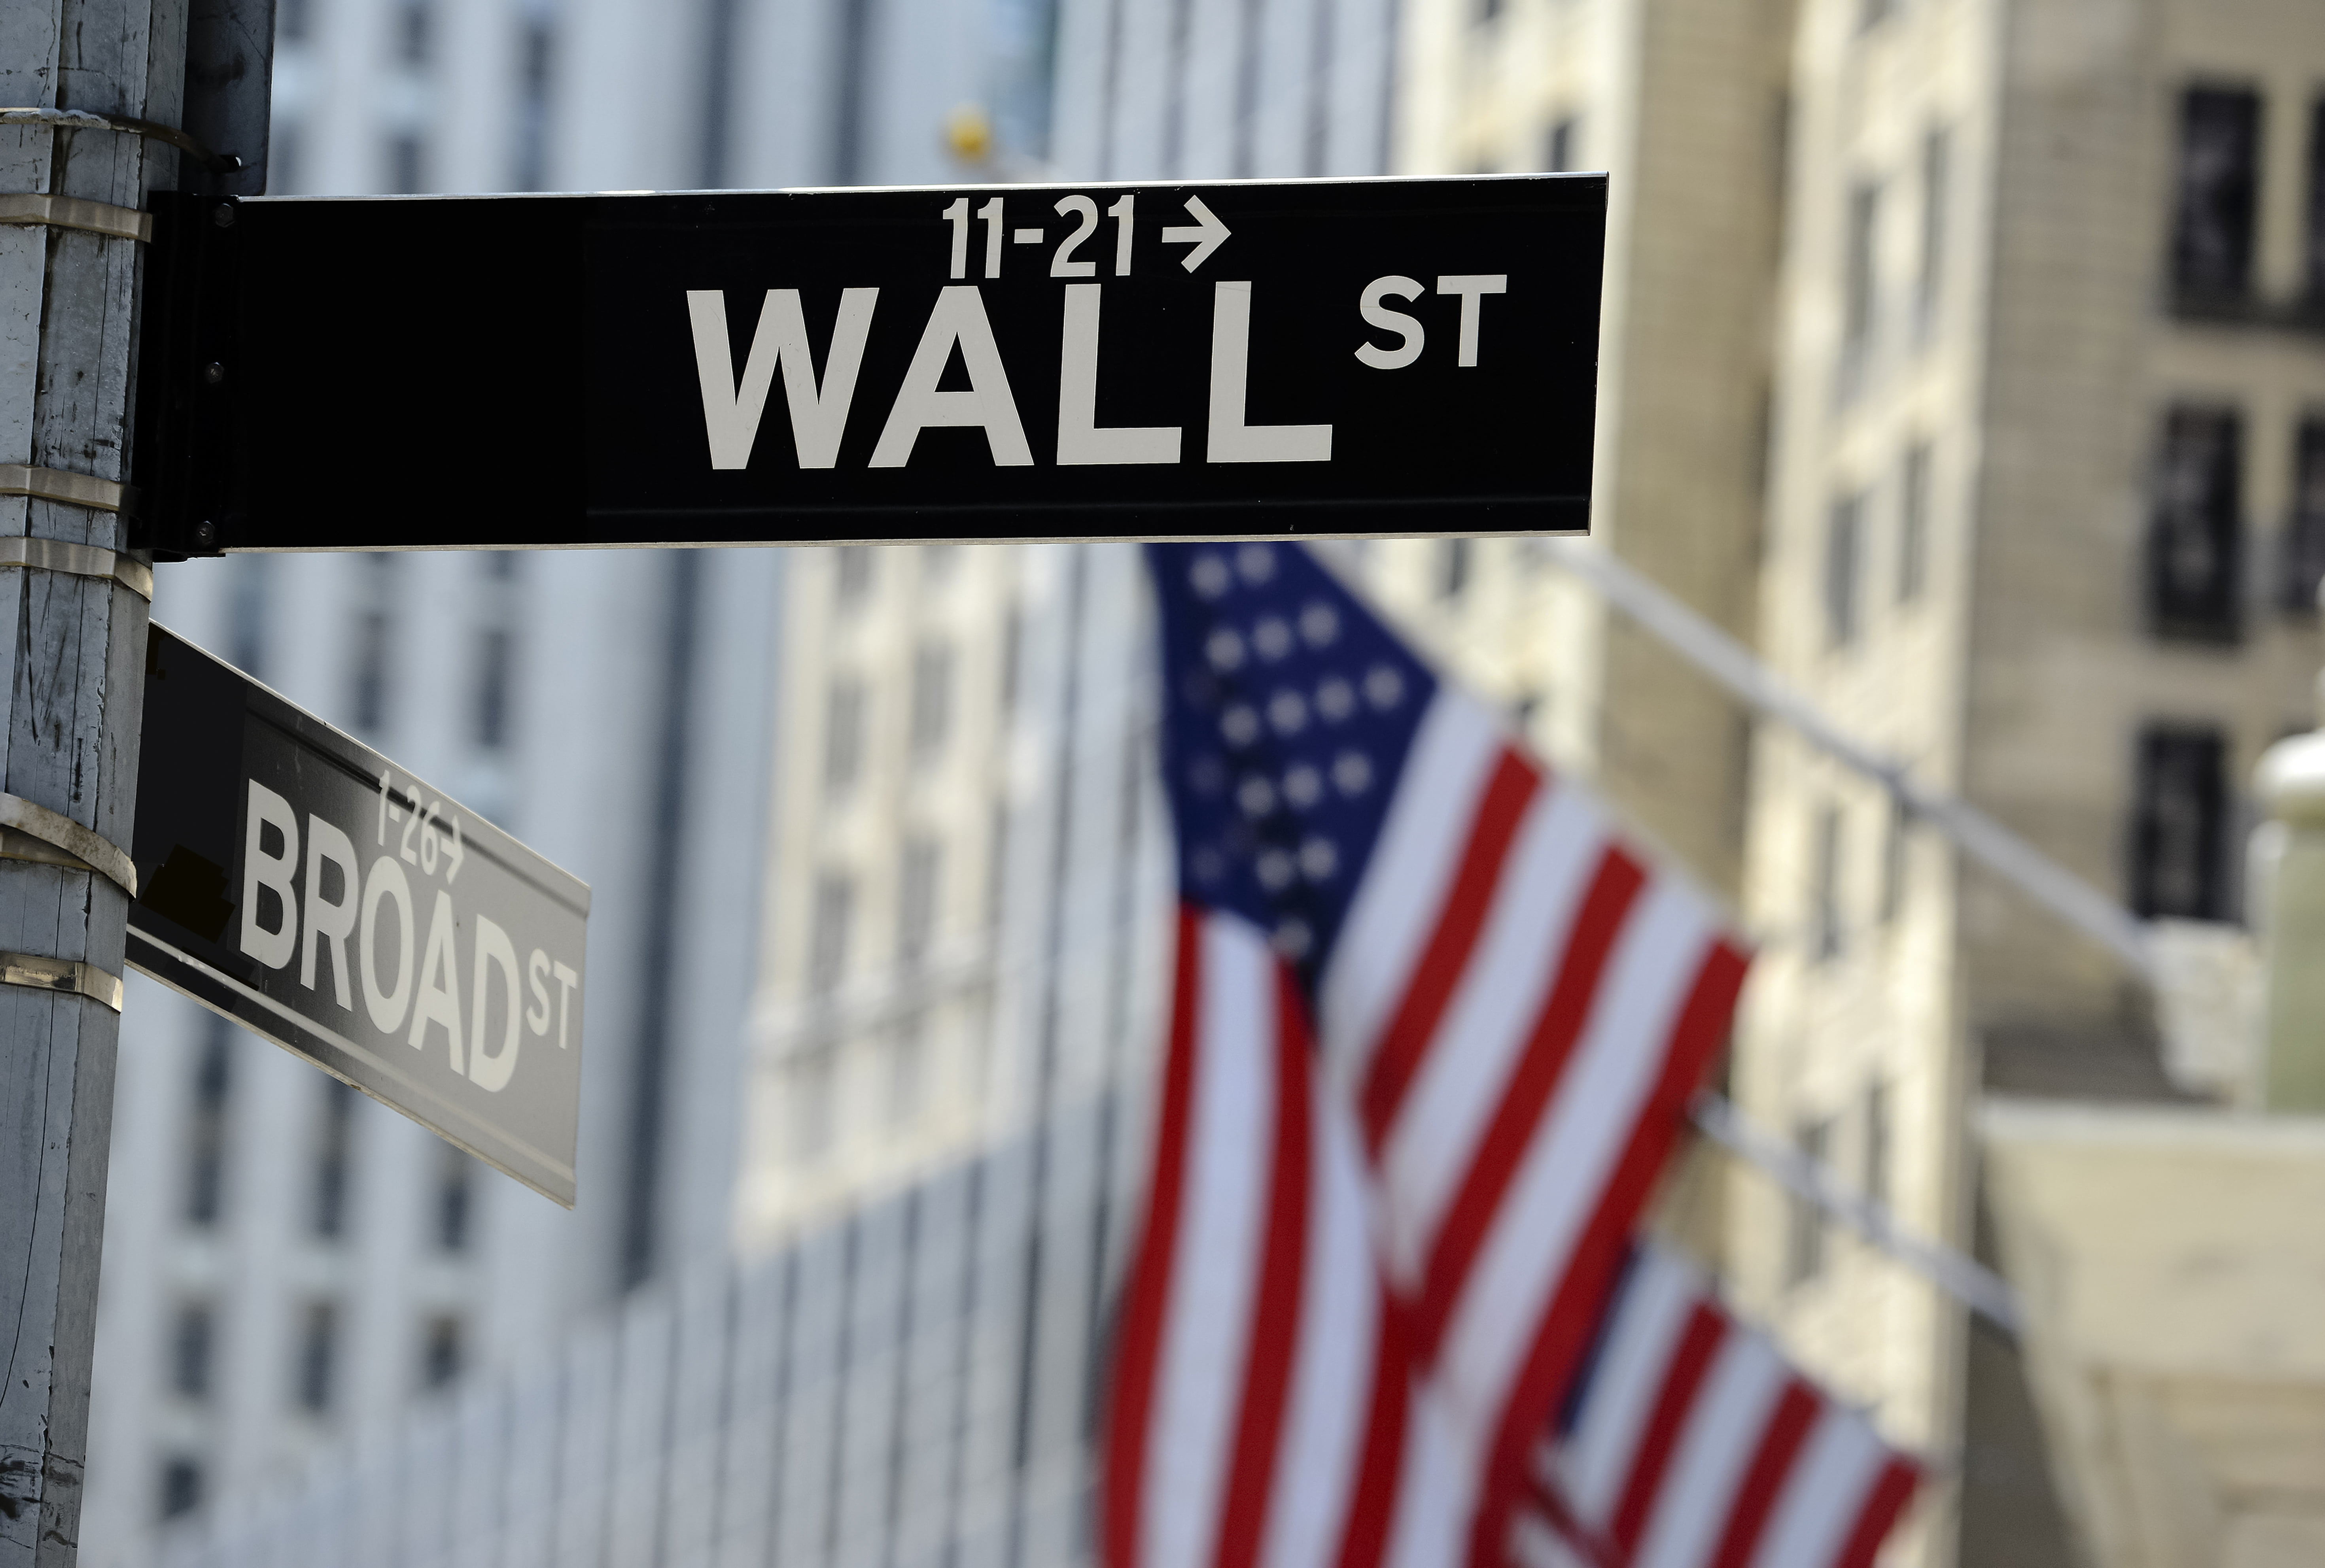 Bitcoin and Wall Street have opposing philosophies